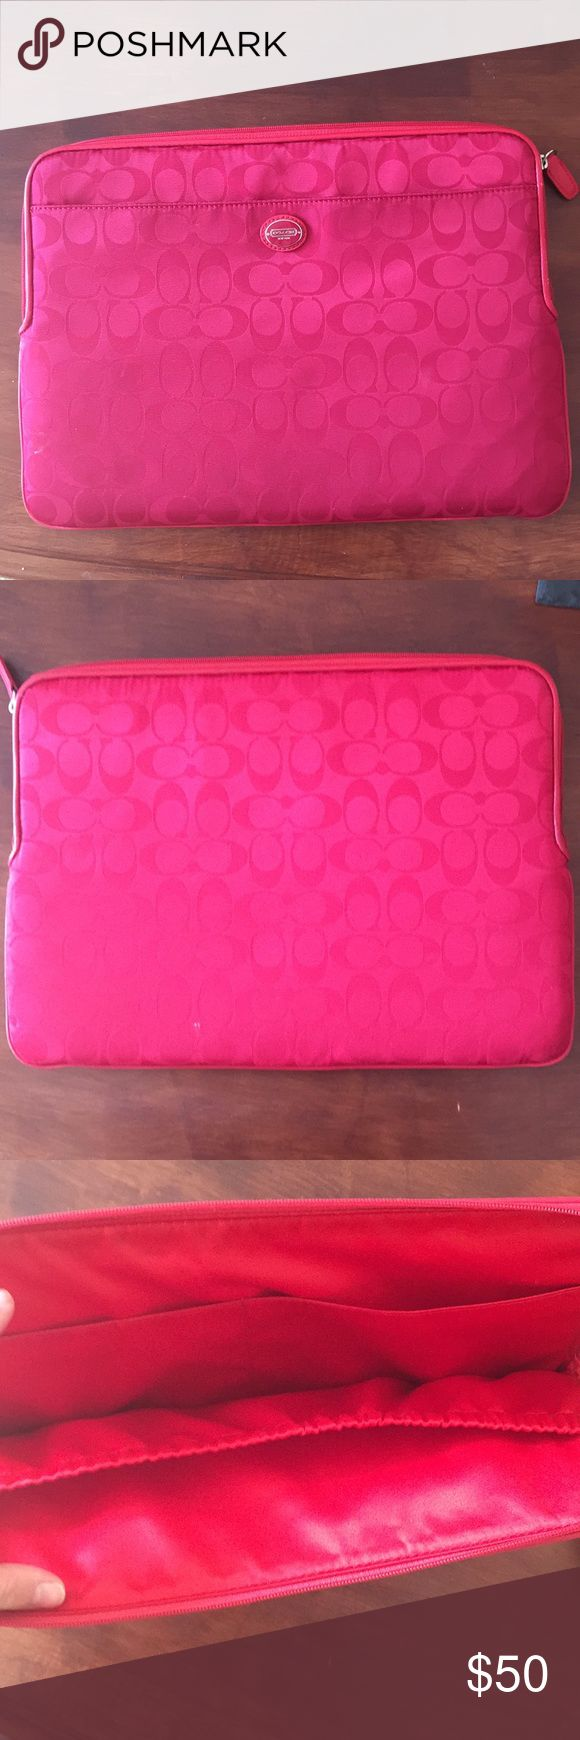 "Coach red laptop case Best price on the market! Little to no wear. Fits 13"" computers perfectly. It is very protective, 1/4"" thick padding all around. It has the distinctive coach ""c"" pattern Coach Accessories Laptop Cases"